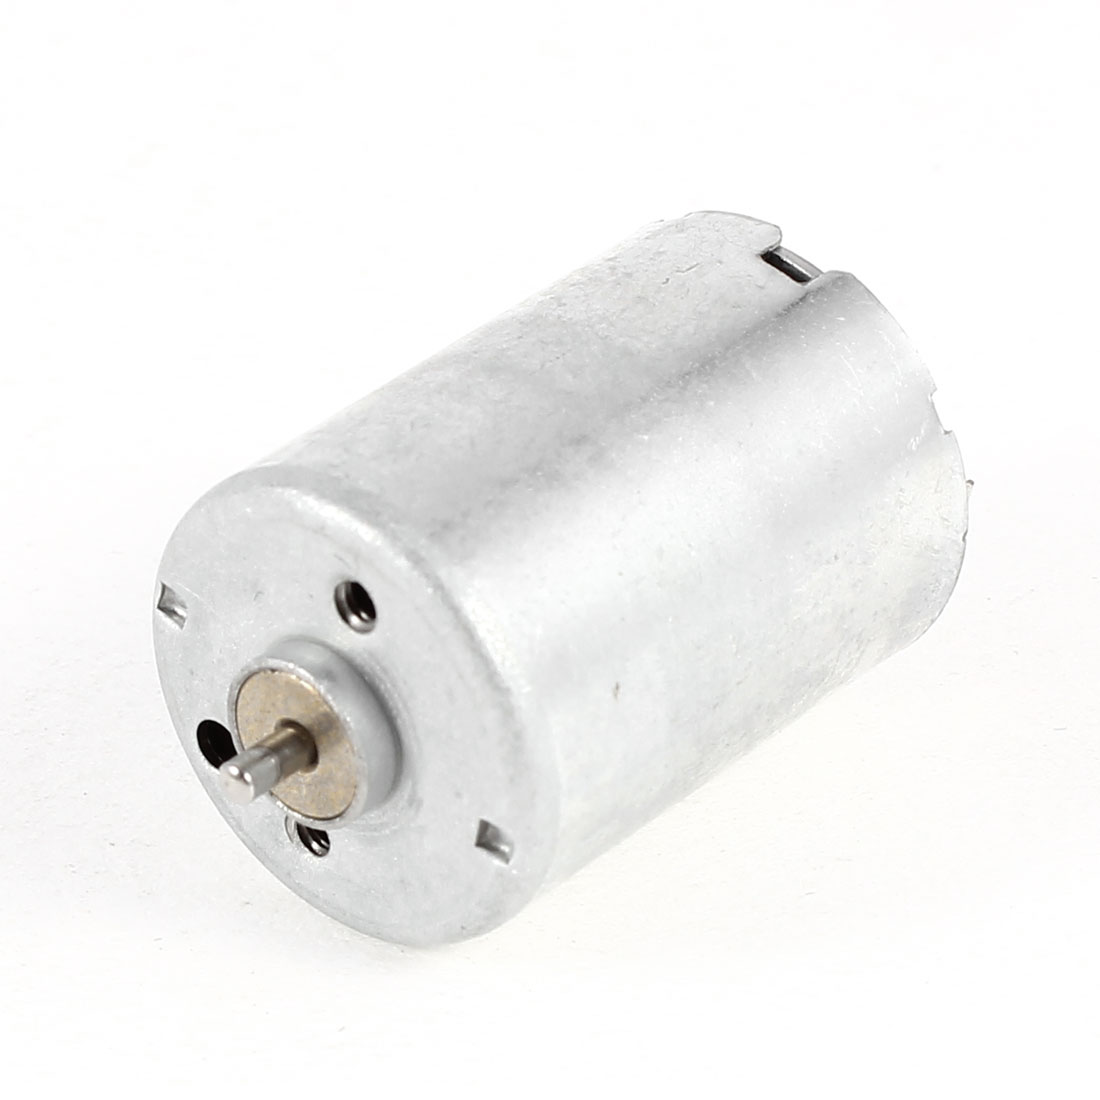 DC 6V 14000RPM High Speed 1.5mm Diameter Axle Cylinder Shape Mini Electric Motor